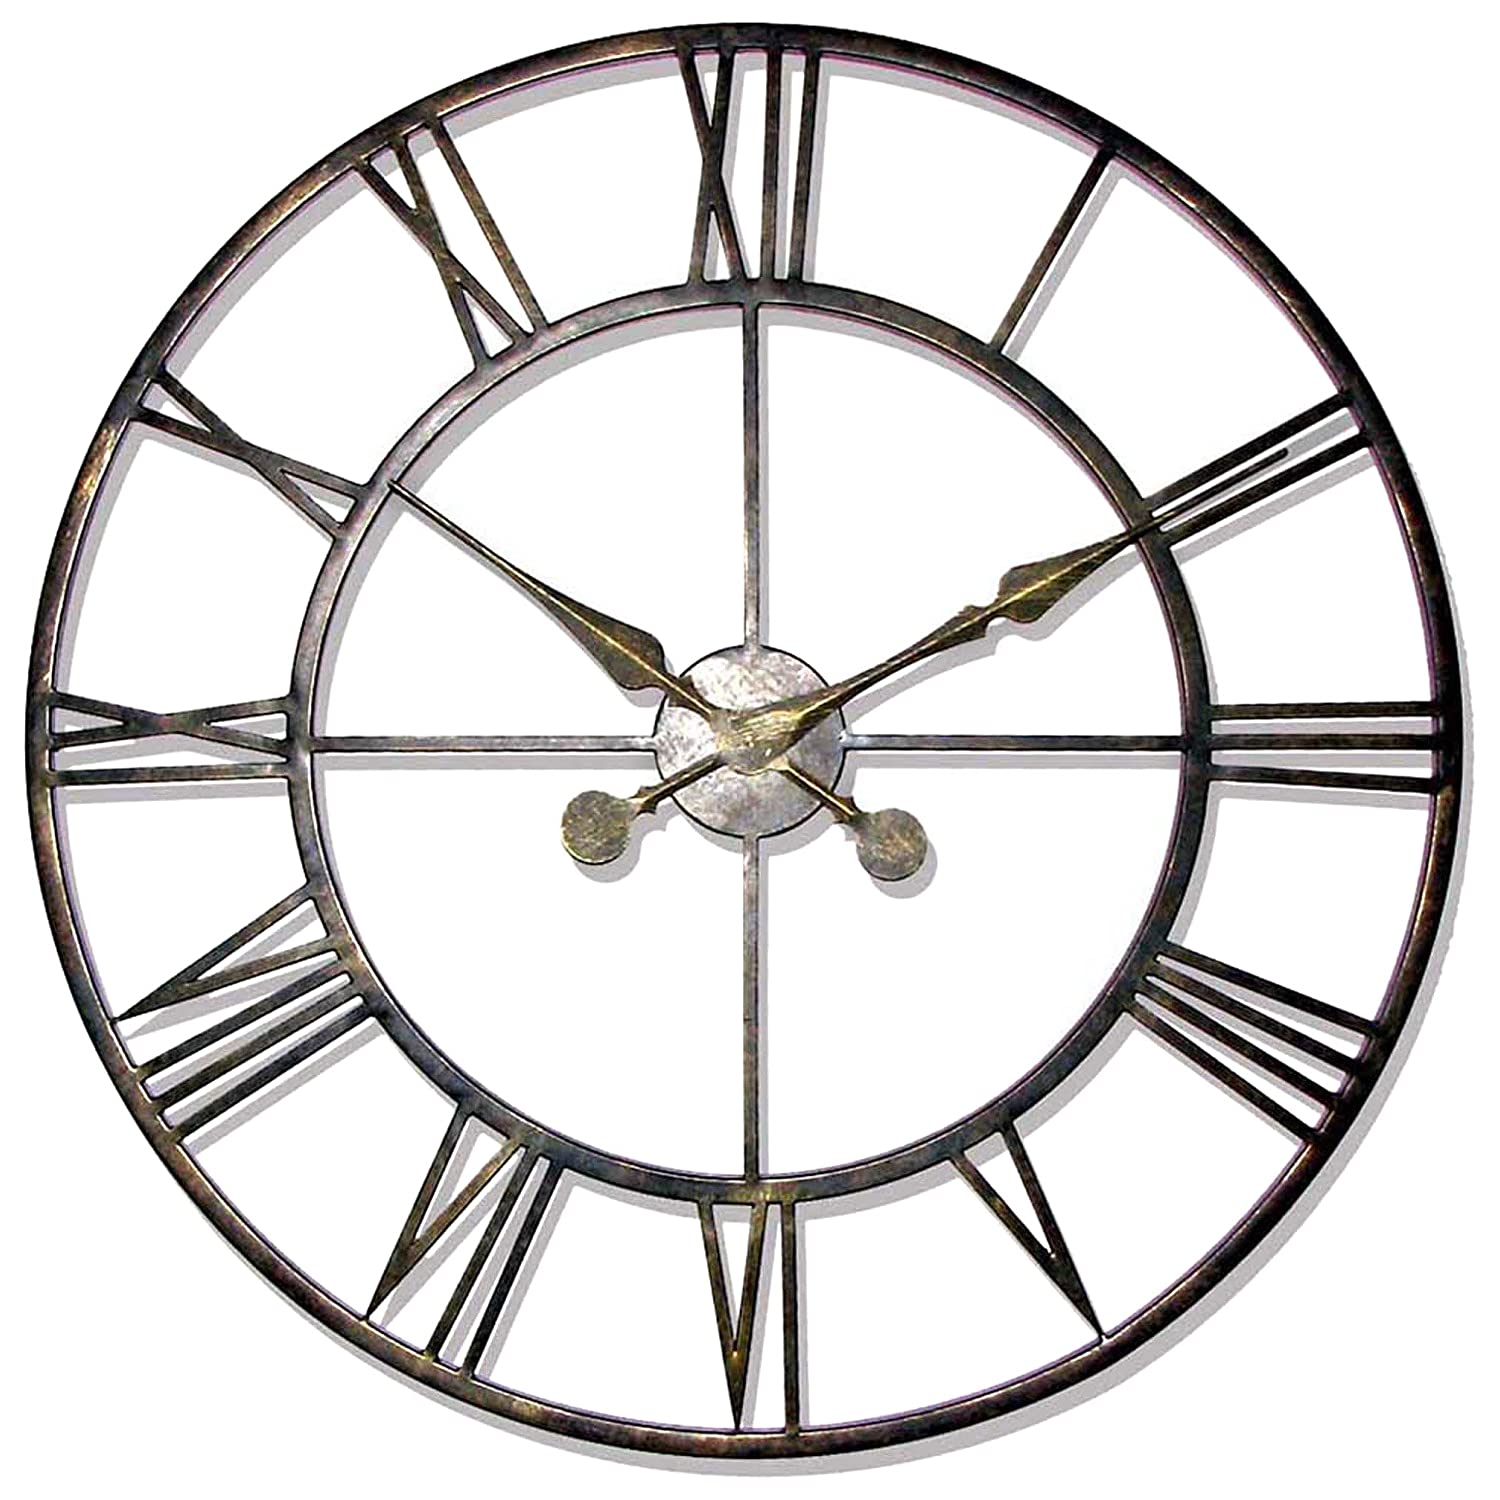 Stylish Large Wall Clocks Fun Amp Fashionable Home